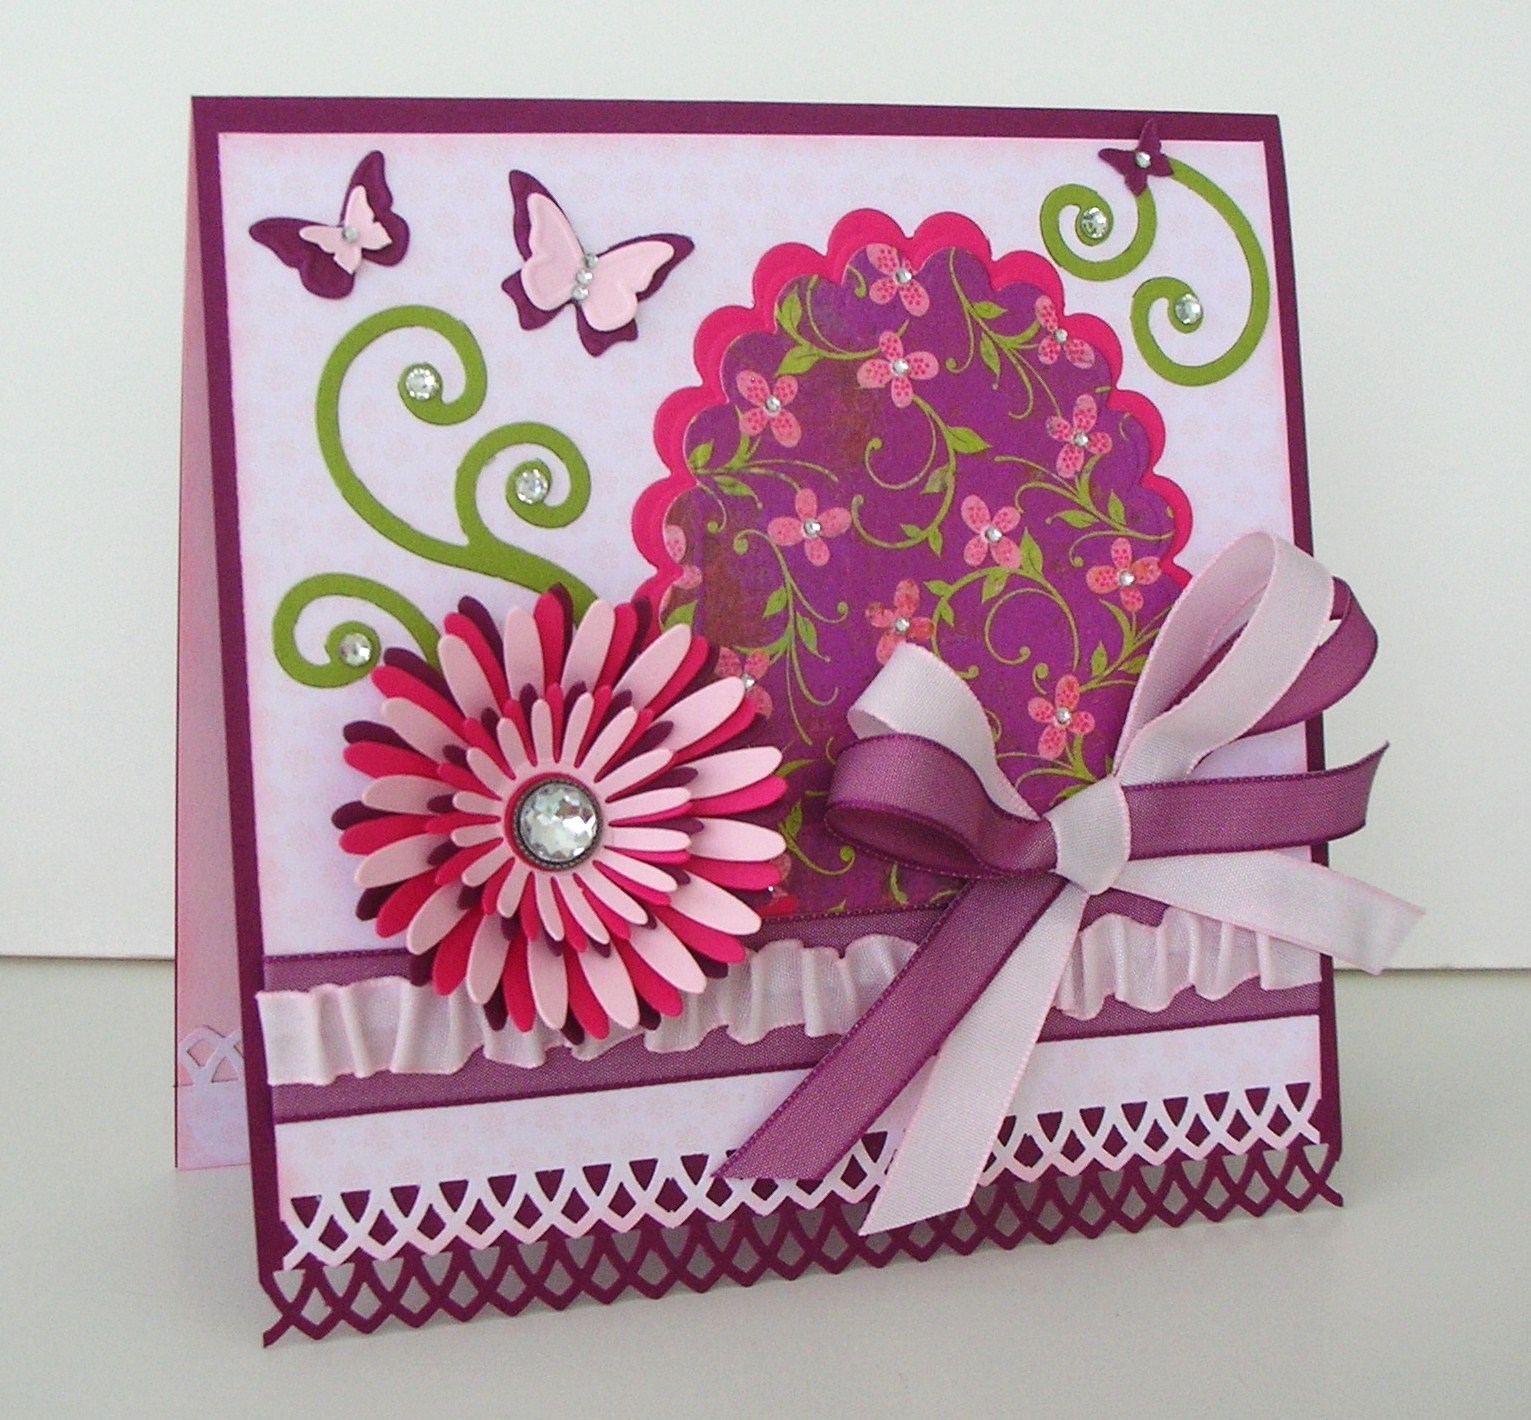 Crafting with Princess Lisa A 50th Birthday Card